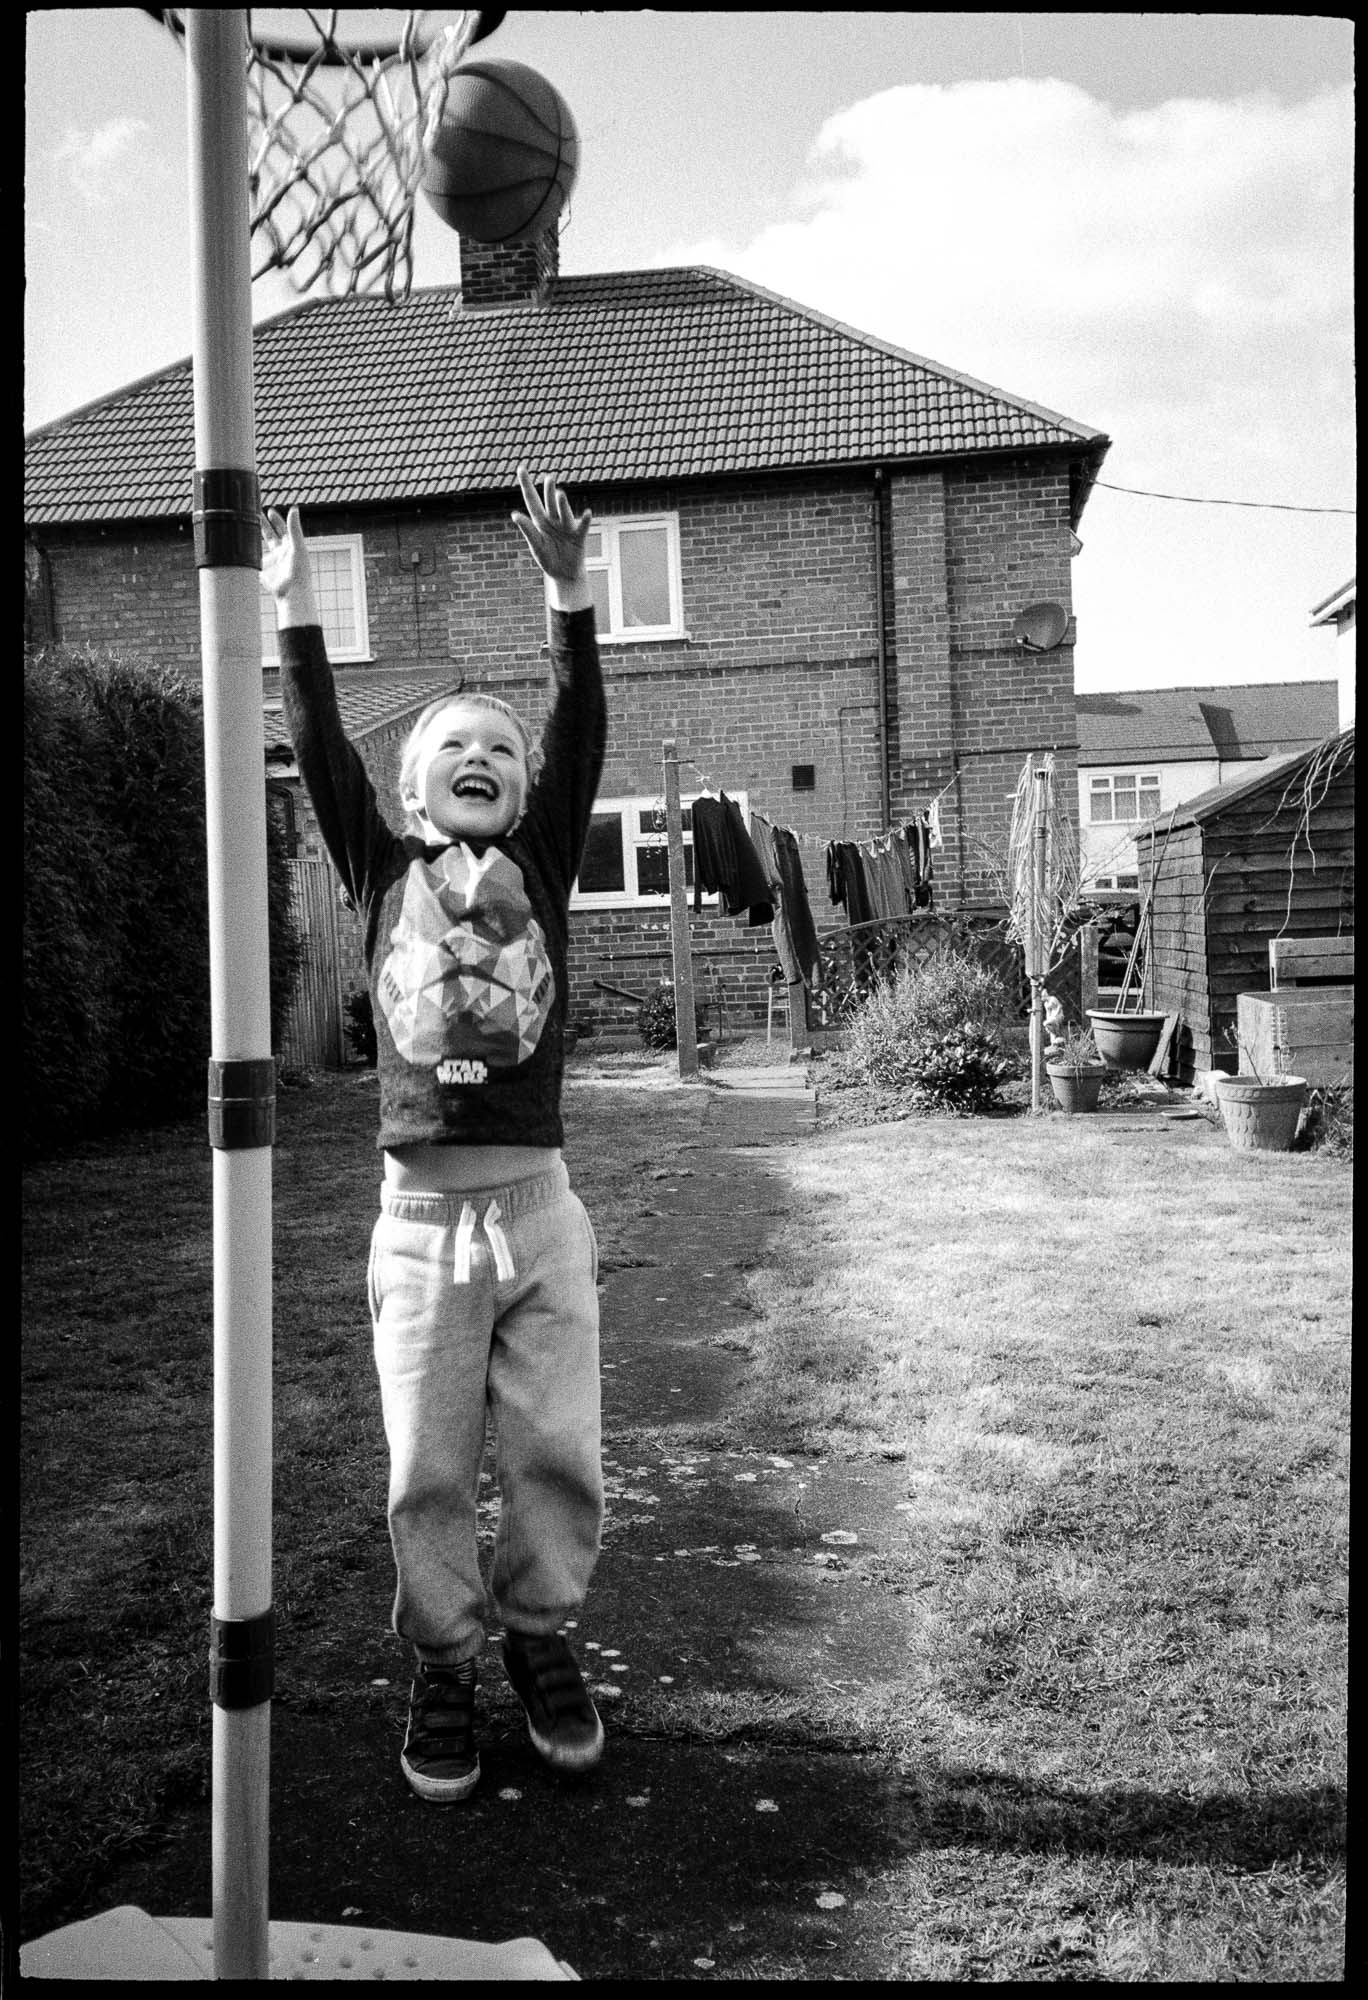 a child playing basketball in the garden, shot in black and white